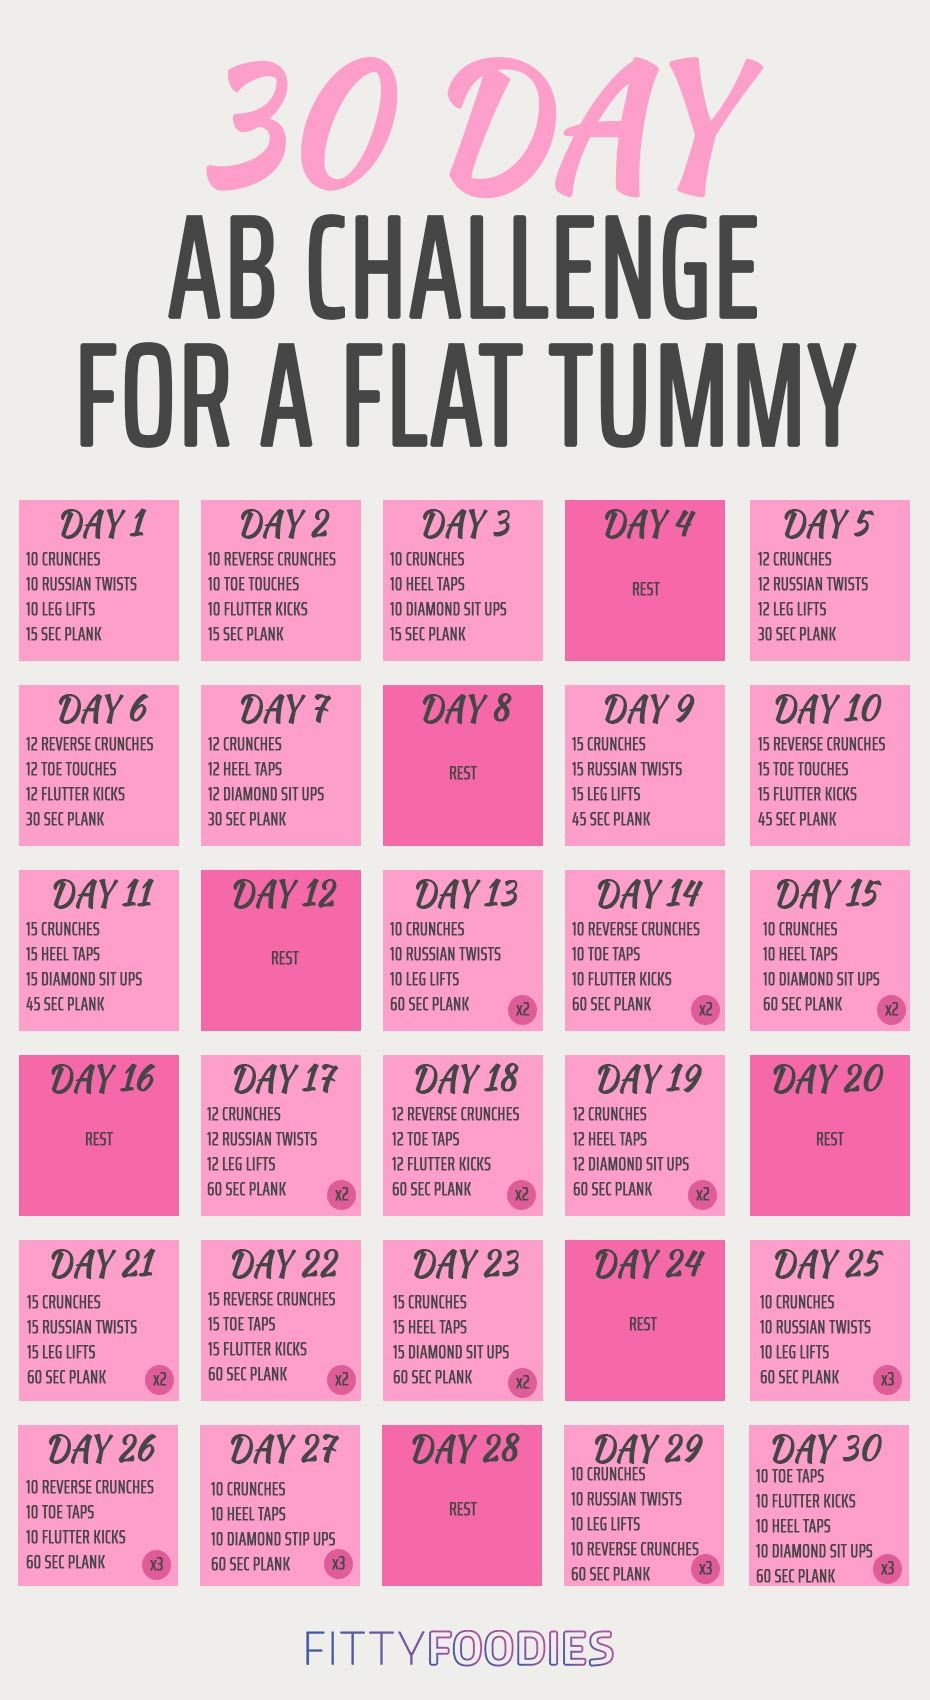 The 30 Day Ab Challenge For A Flat Tummy | 30 Day Workout Intended For 30 Day Flat Abs Challenge Calendar